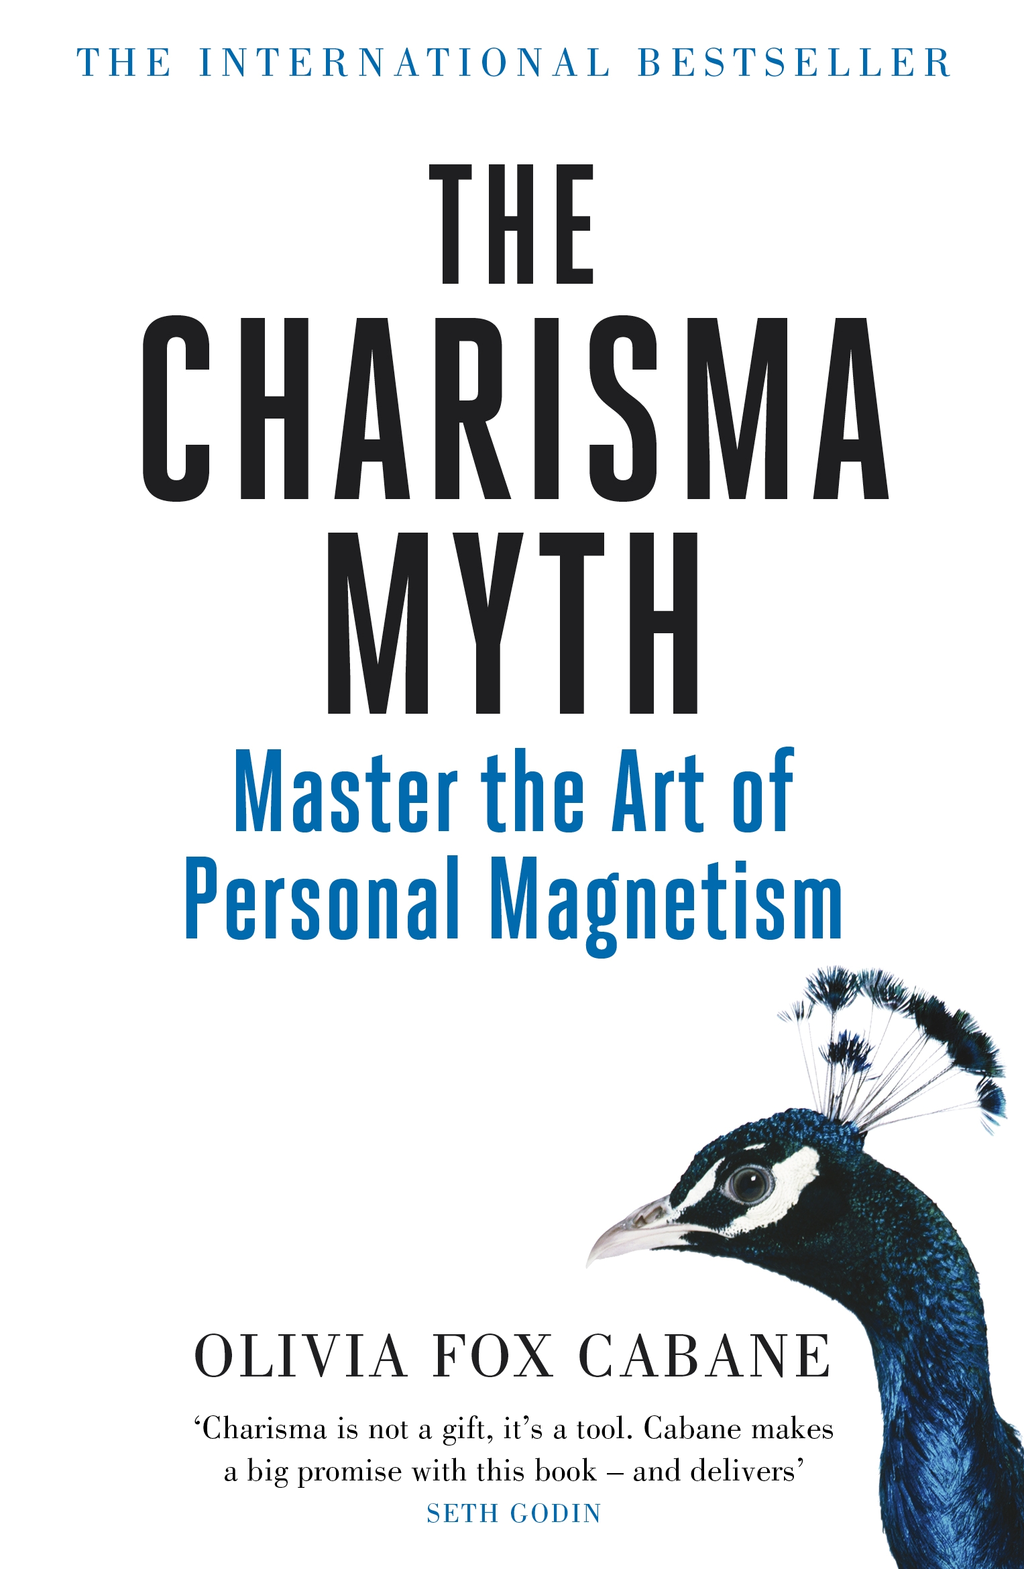 The Charisma Myth Master the Art of Personal Magnetism